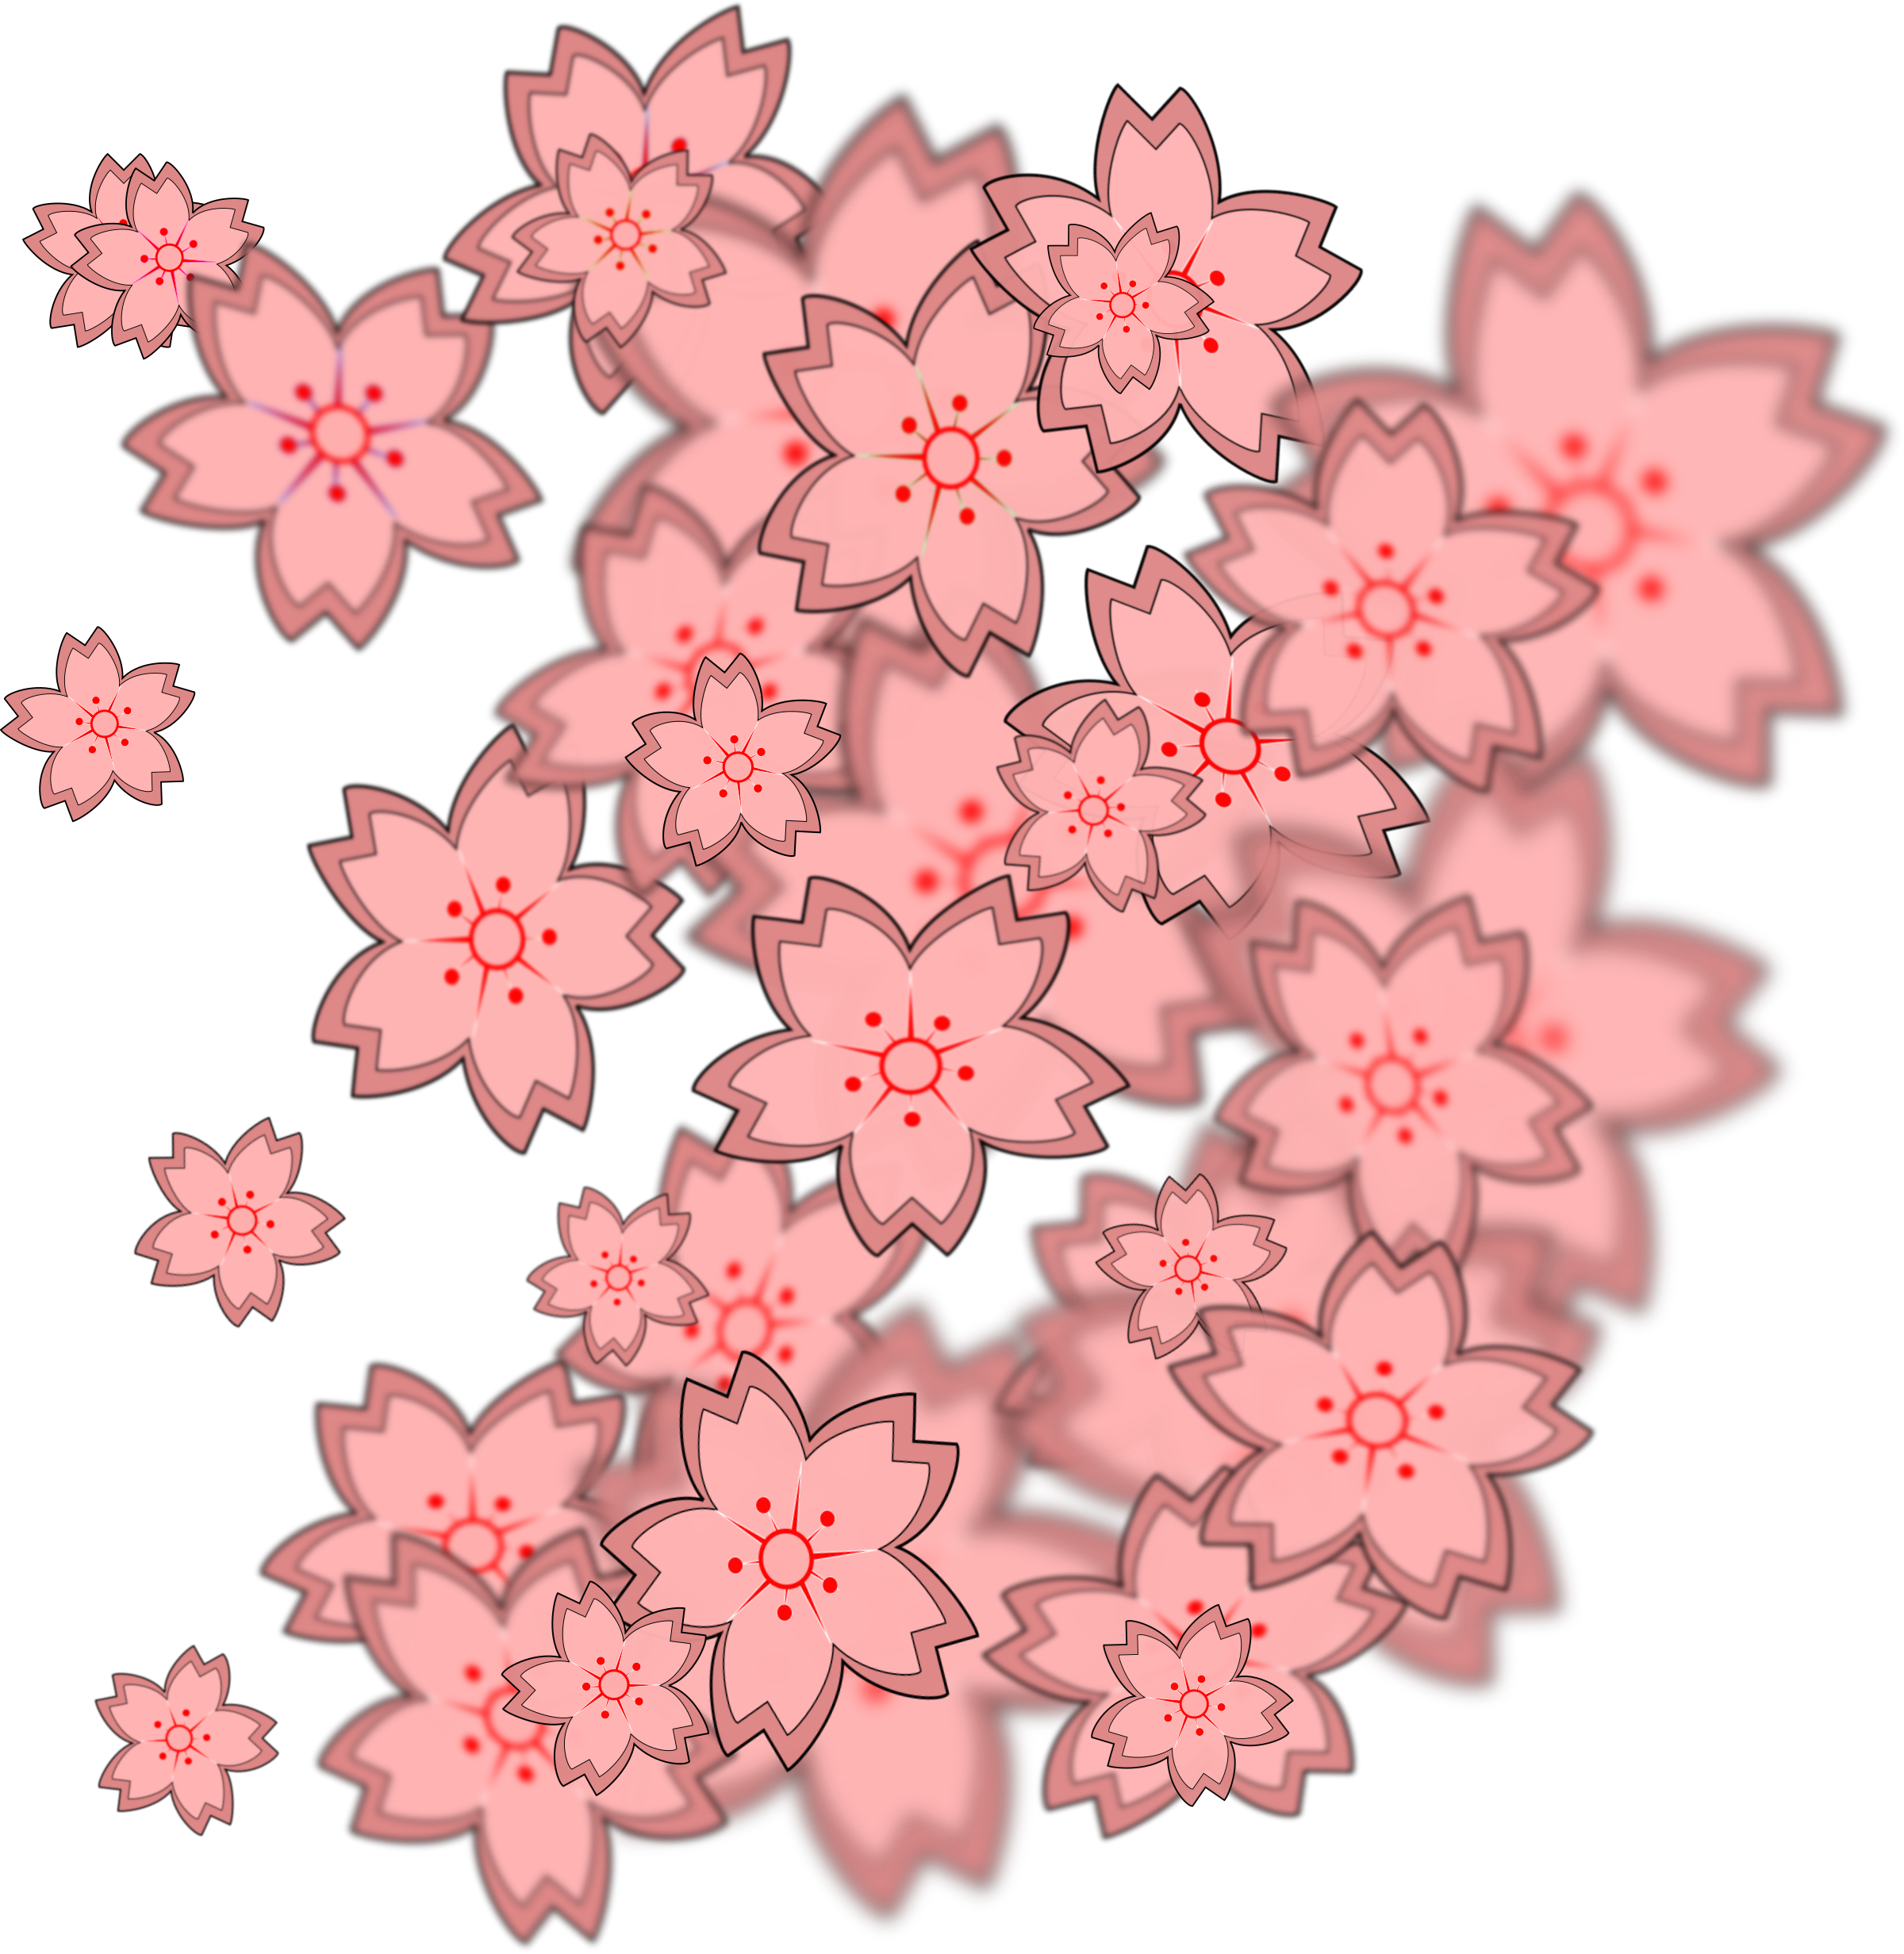 tile effect sakura 2 by ovideva